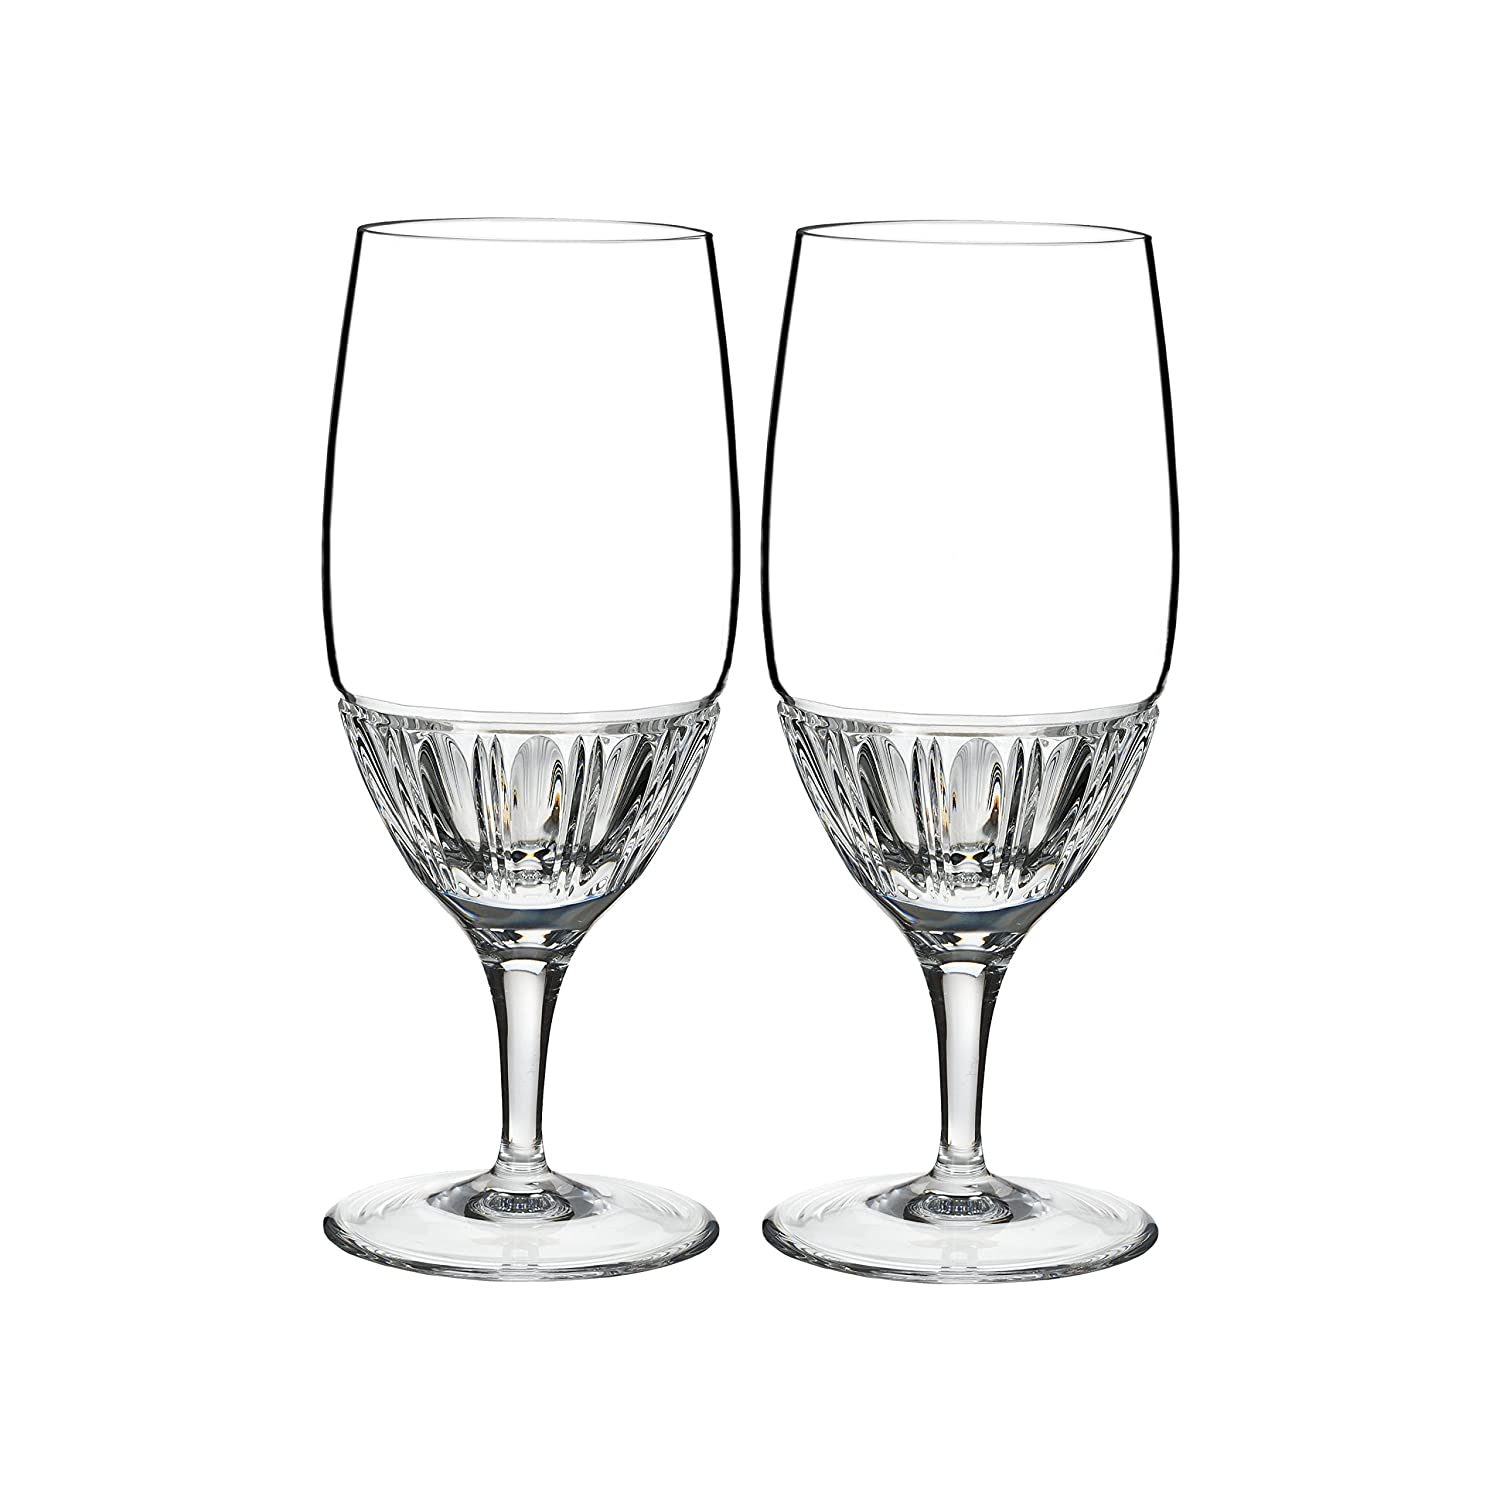 Marquis by Waterford 40019224 Addison Flute Glasses 7 oz Clear WWRD